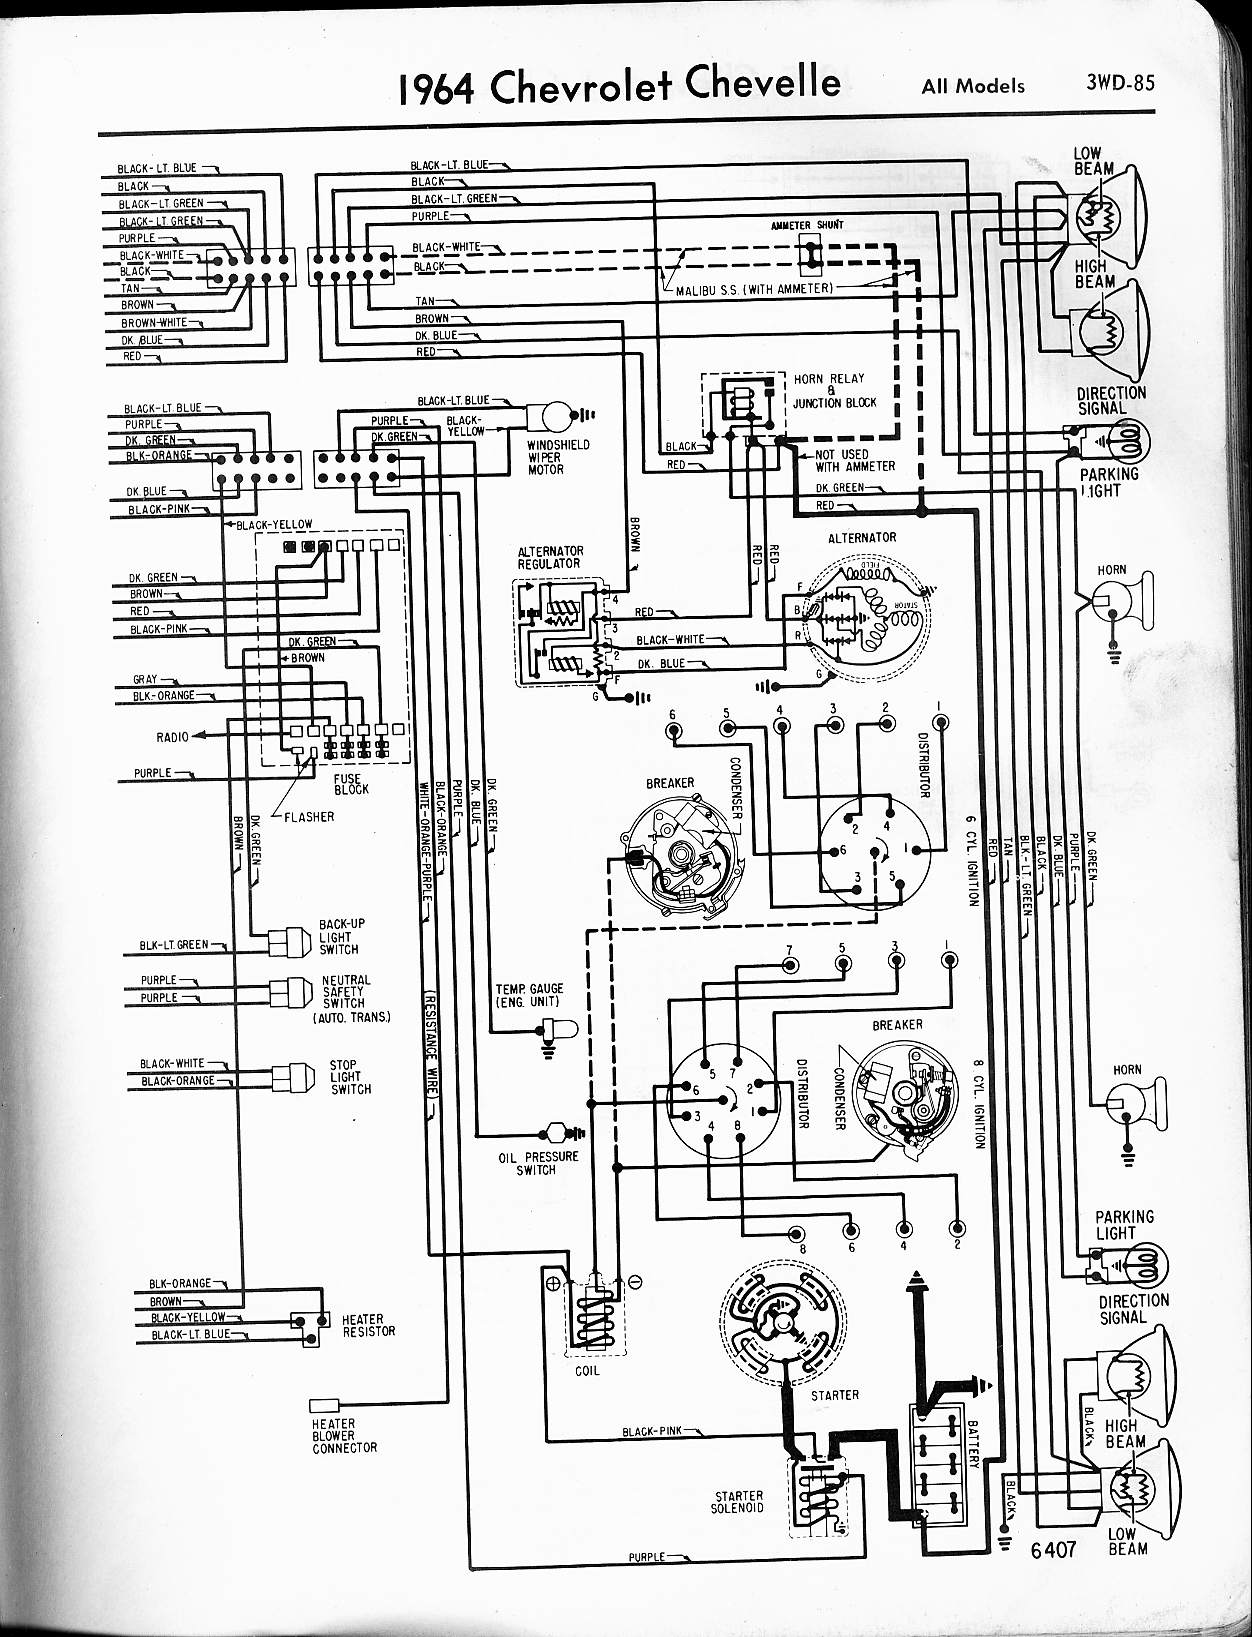 hight resolution of 1967 chevelle wiring diagram pdf wiring diagram inside 1967 chevelle wiring diagram pdf wiring diagram technic